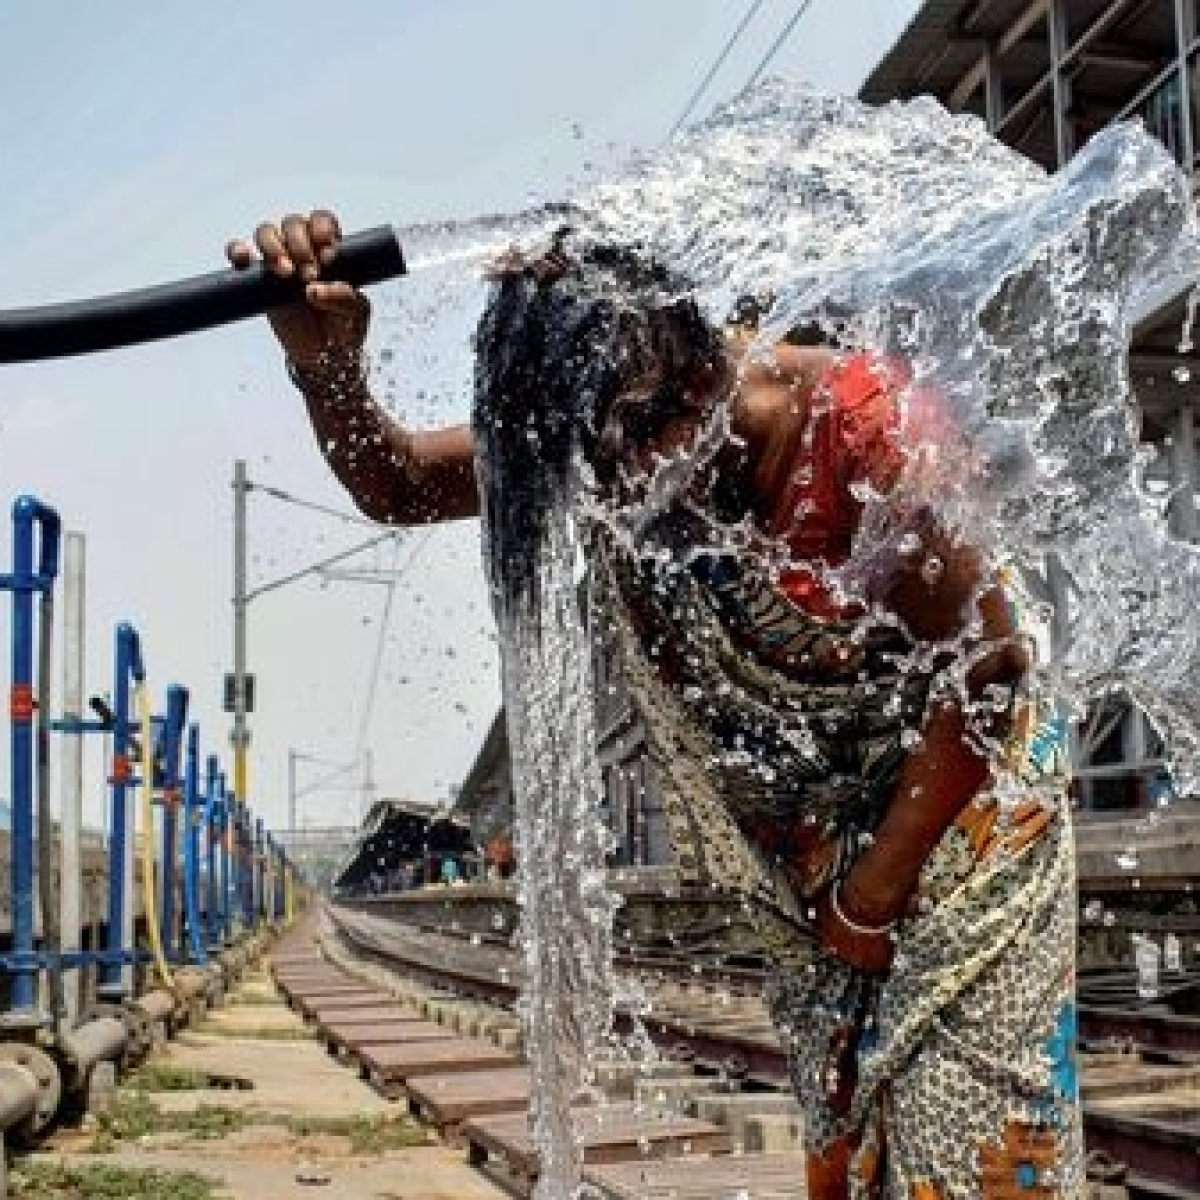 Climate change: '1.5 million more may die in India by 2100 due to extreme heat'